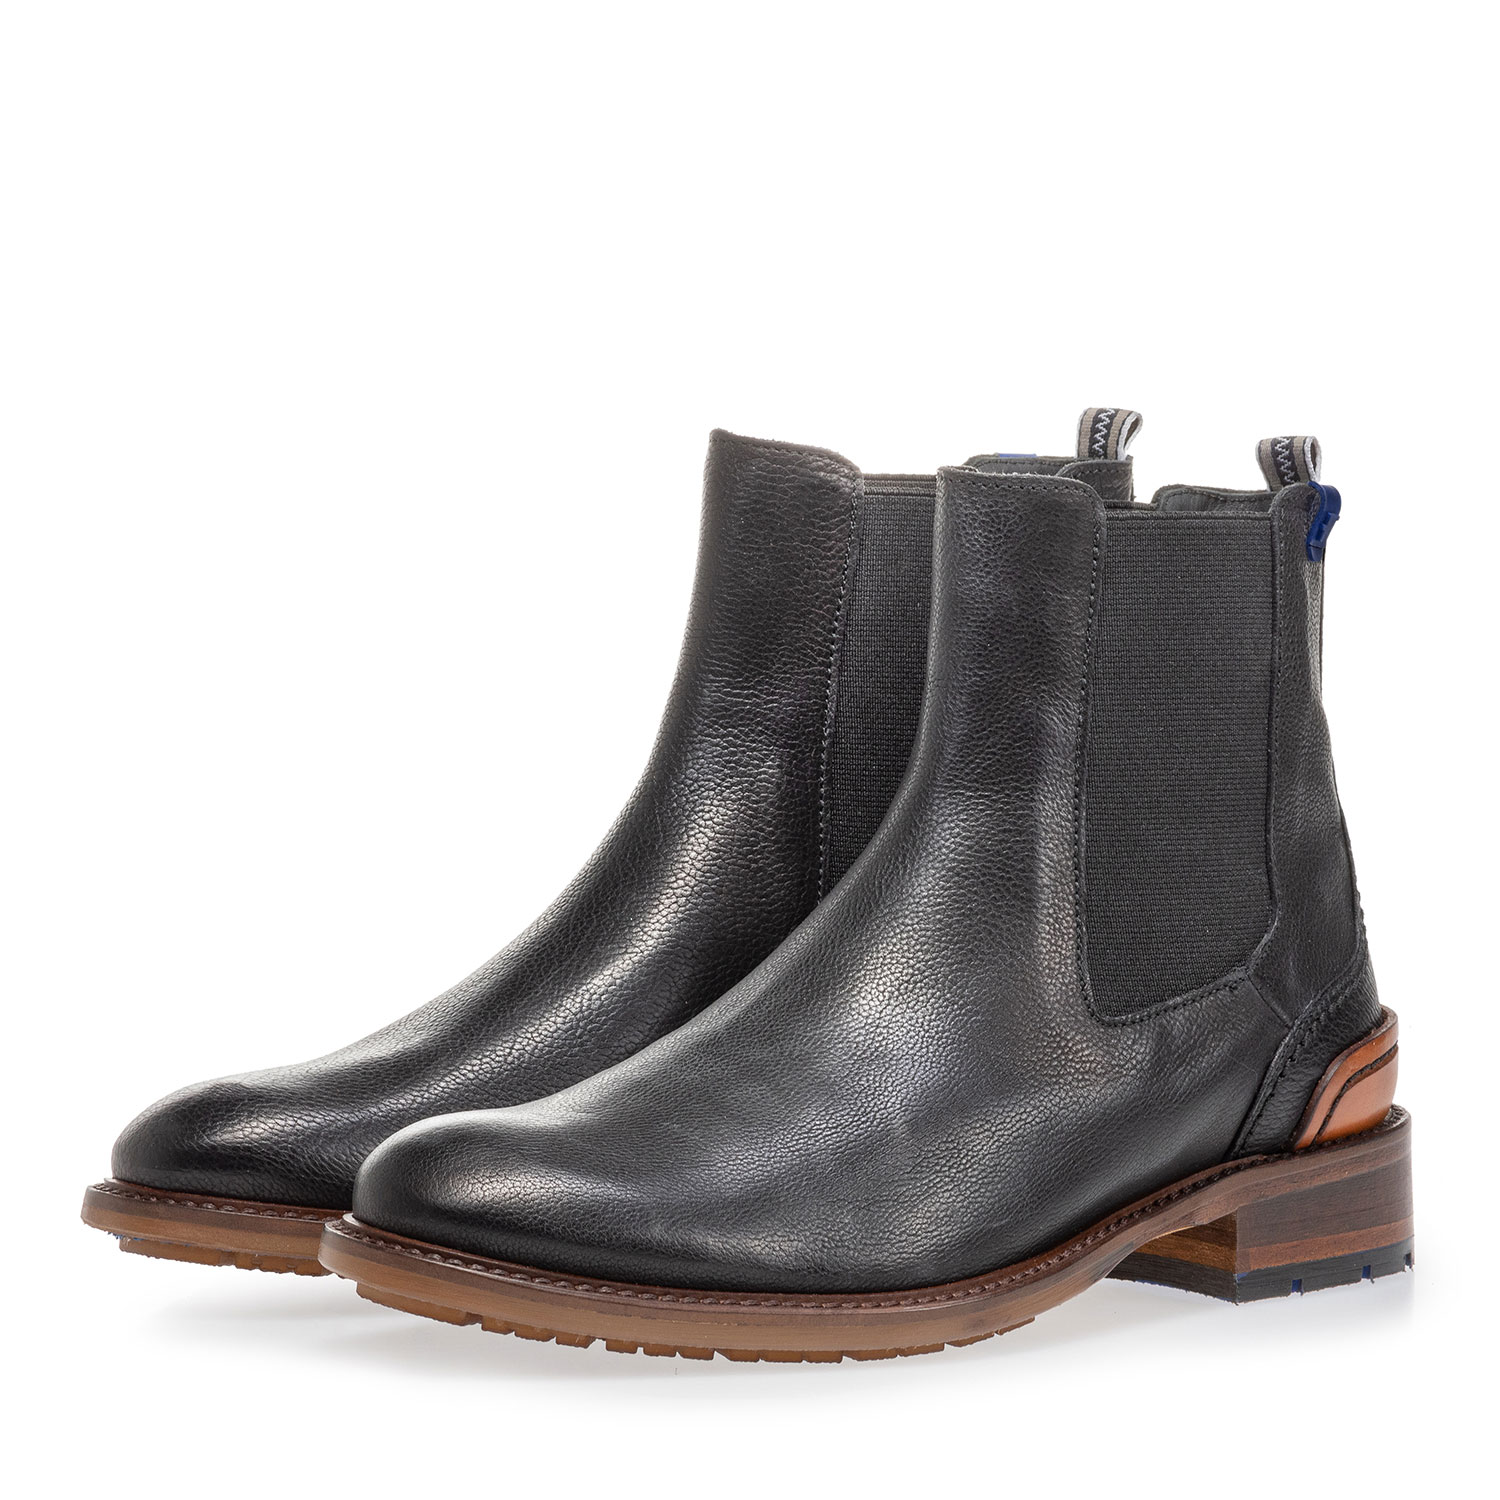 85643/00 - Chelsea boot black calf leather